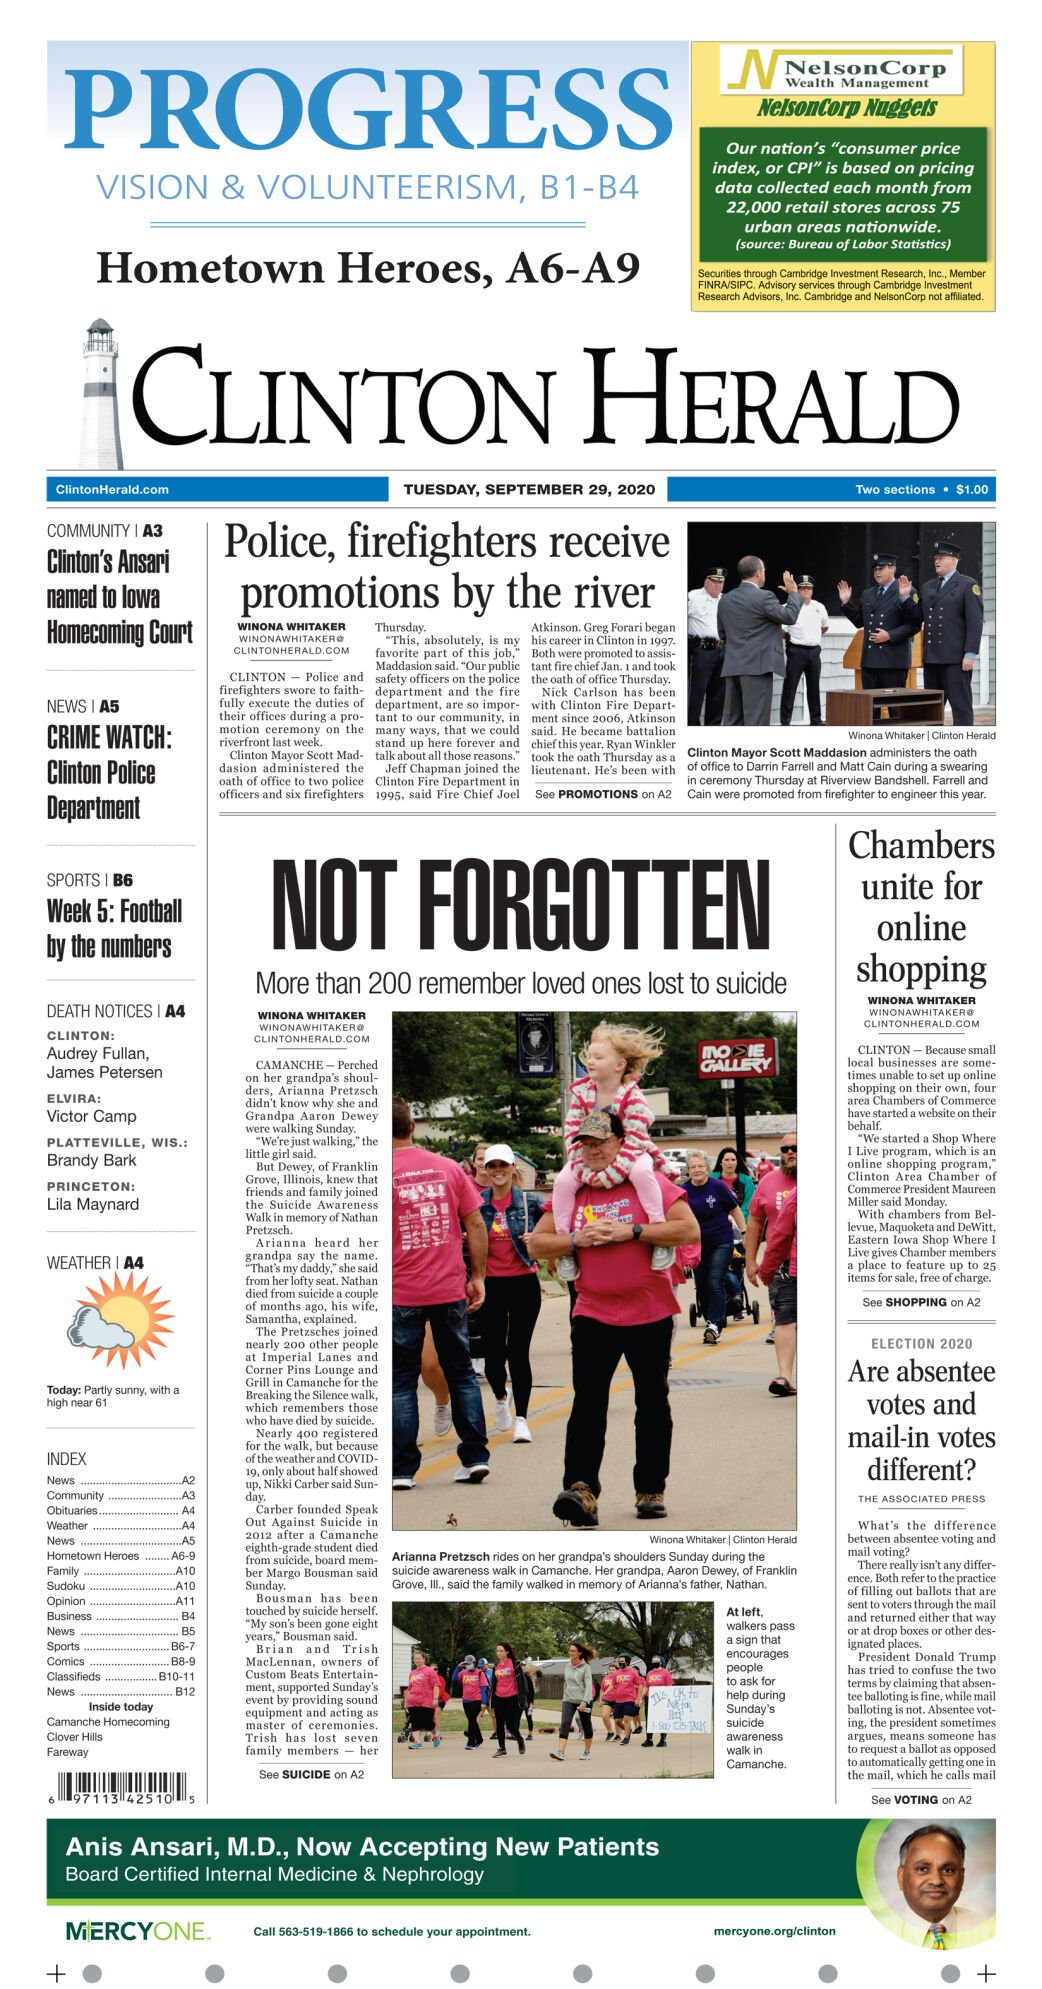 September 29, 2020 Front Sports page